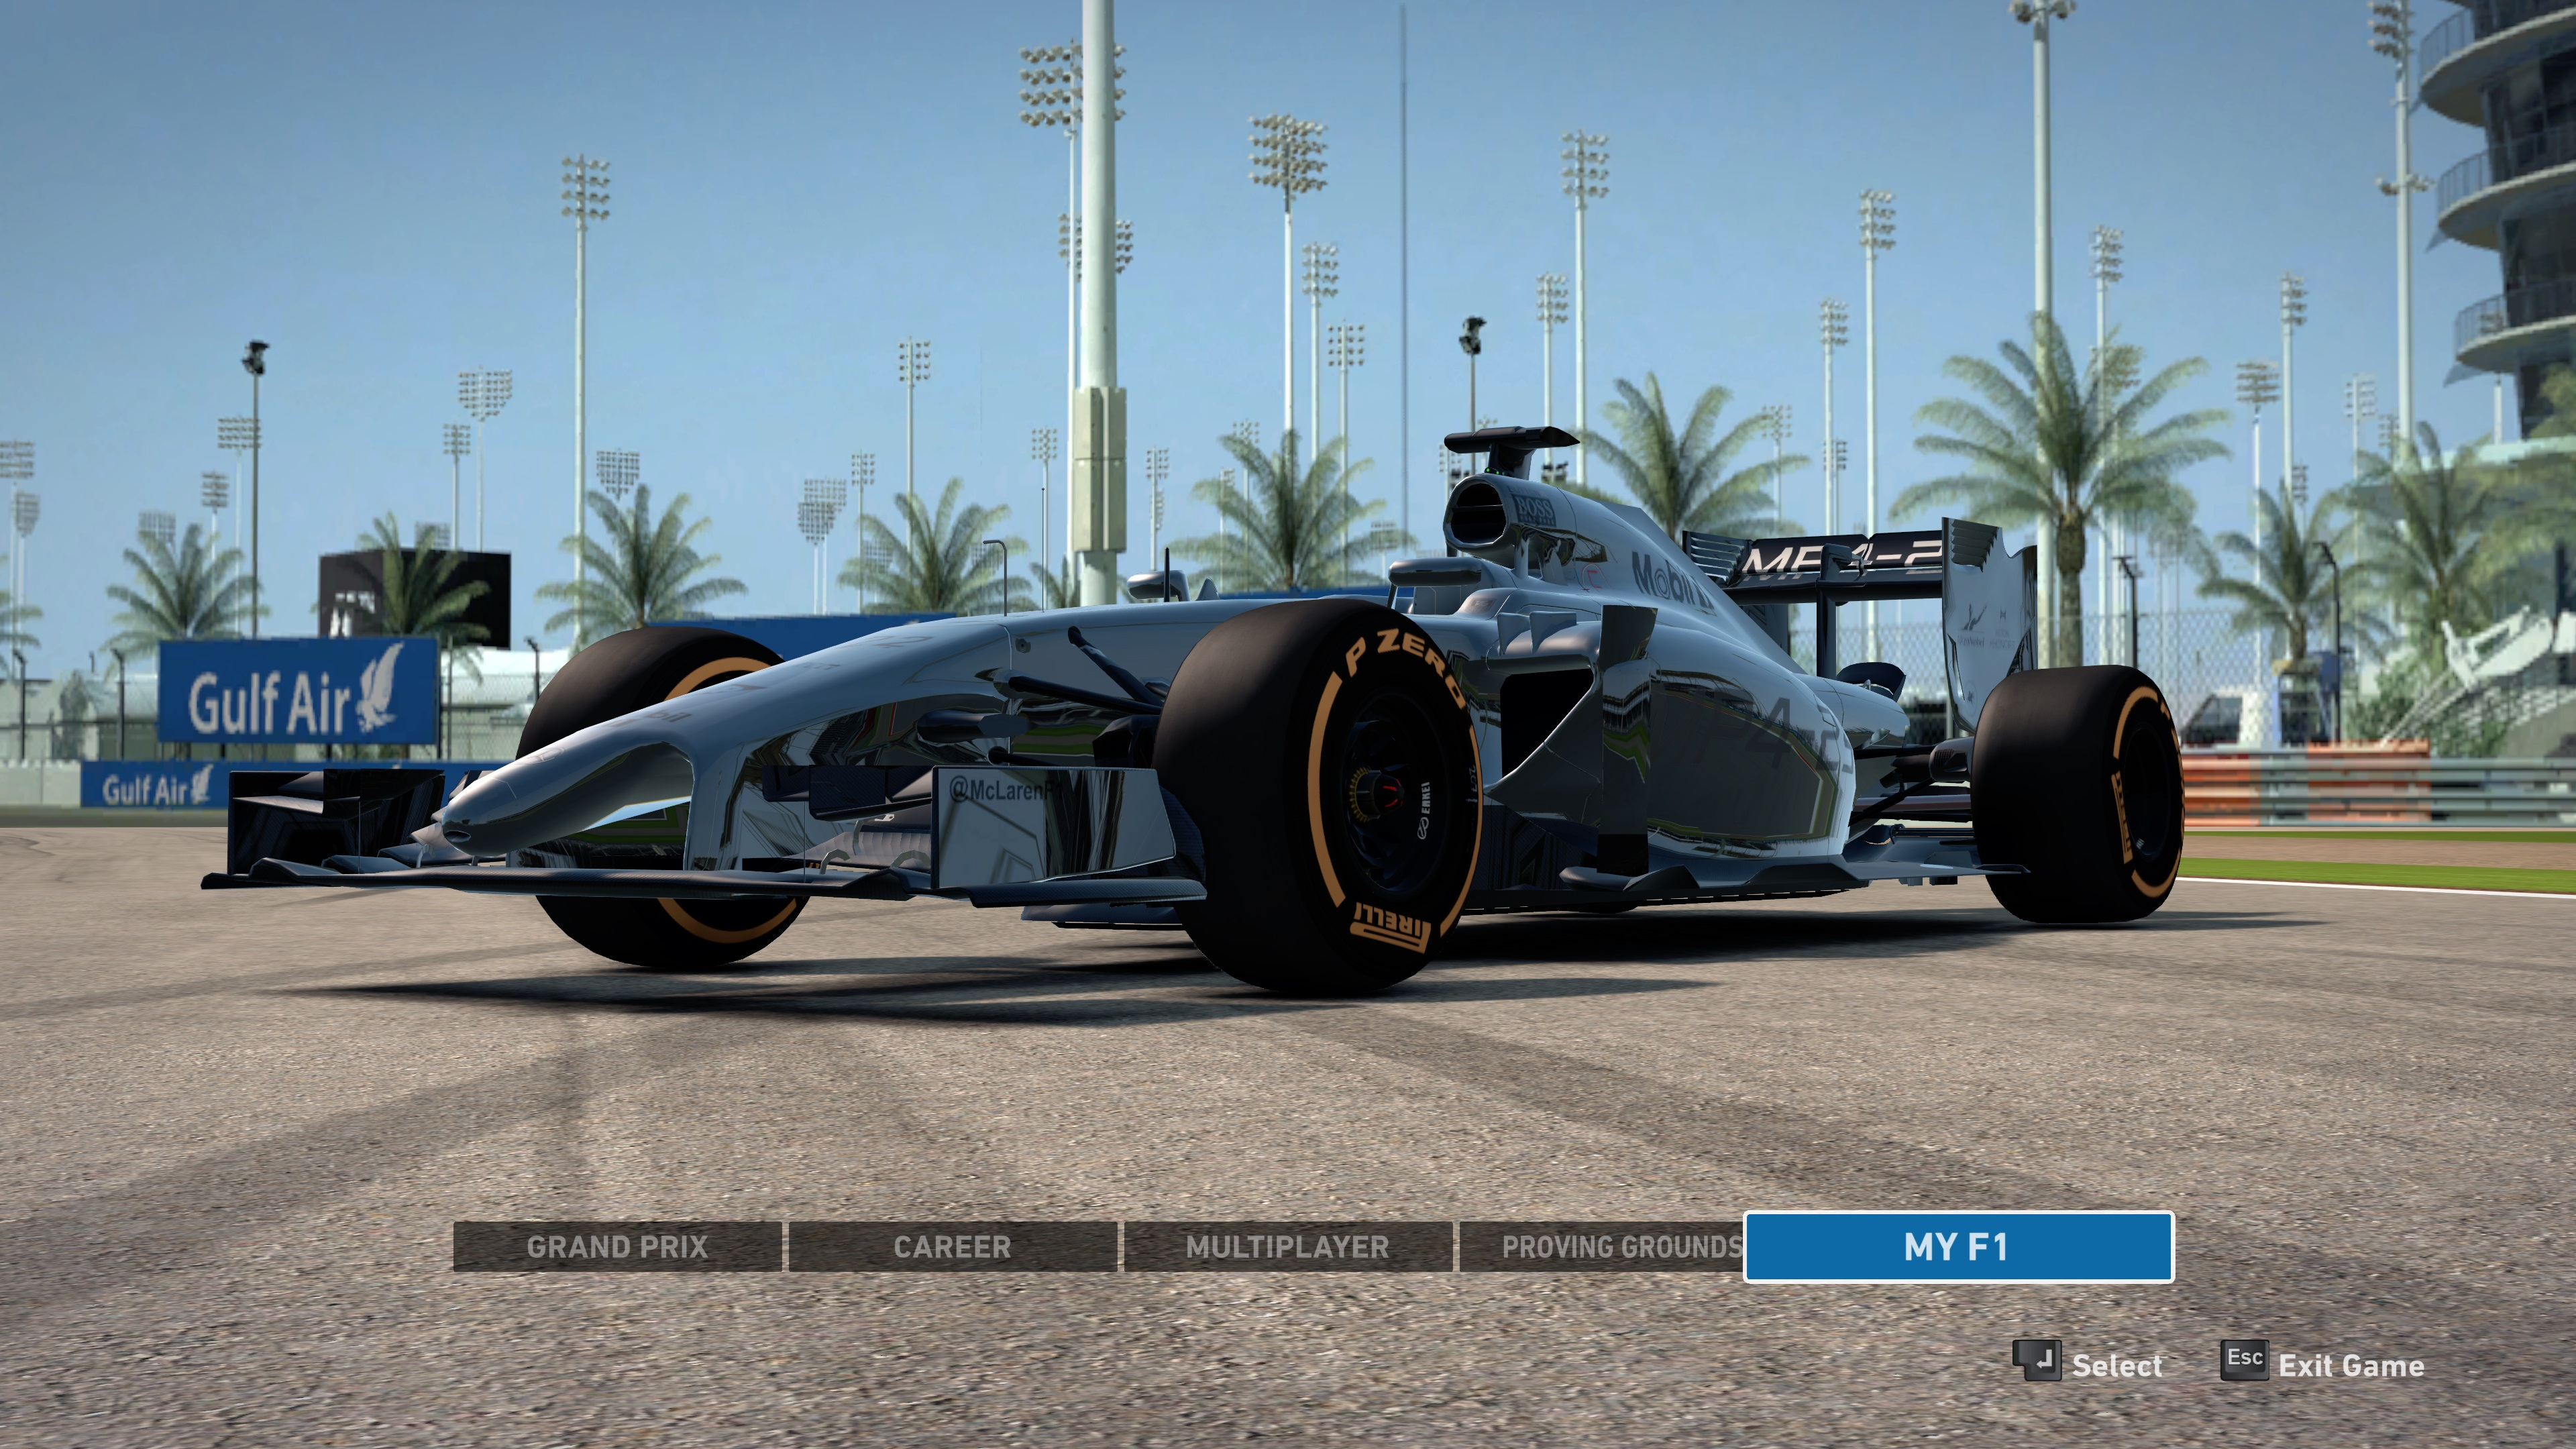 F1 2014 PC Benchmark Performance - HardwarePal